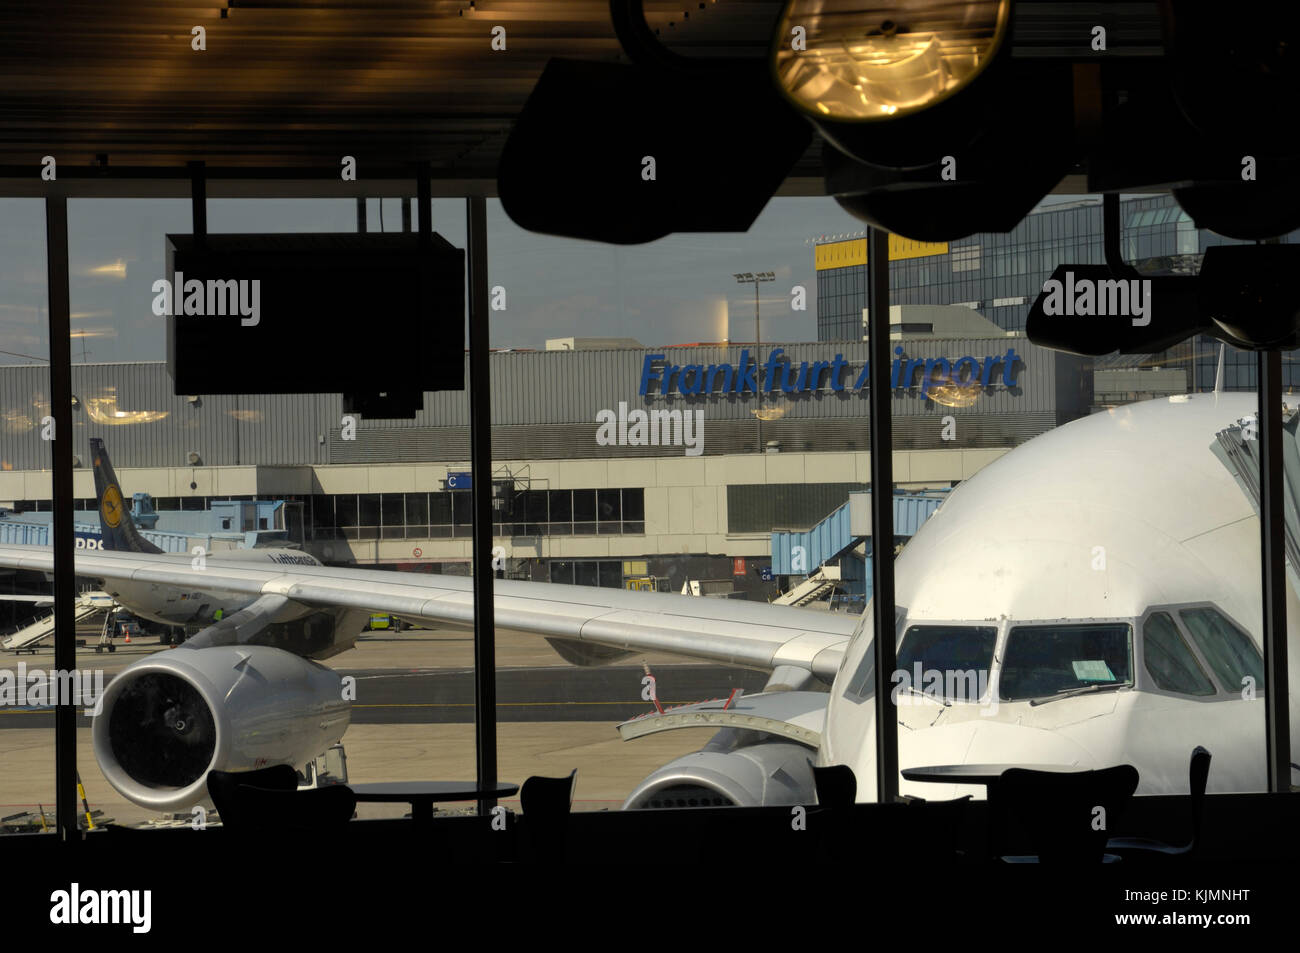 windshield of the South African Airways Airbus A340 parked at a gate and Lufthansa Boeing 737 parked behind at theStock Photo